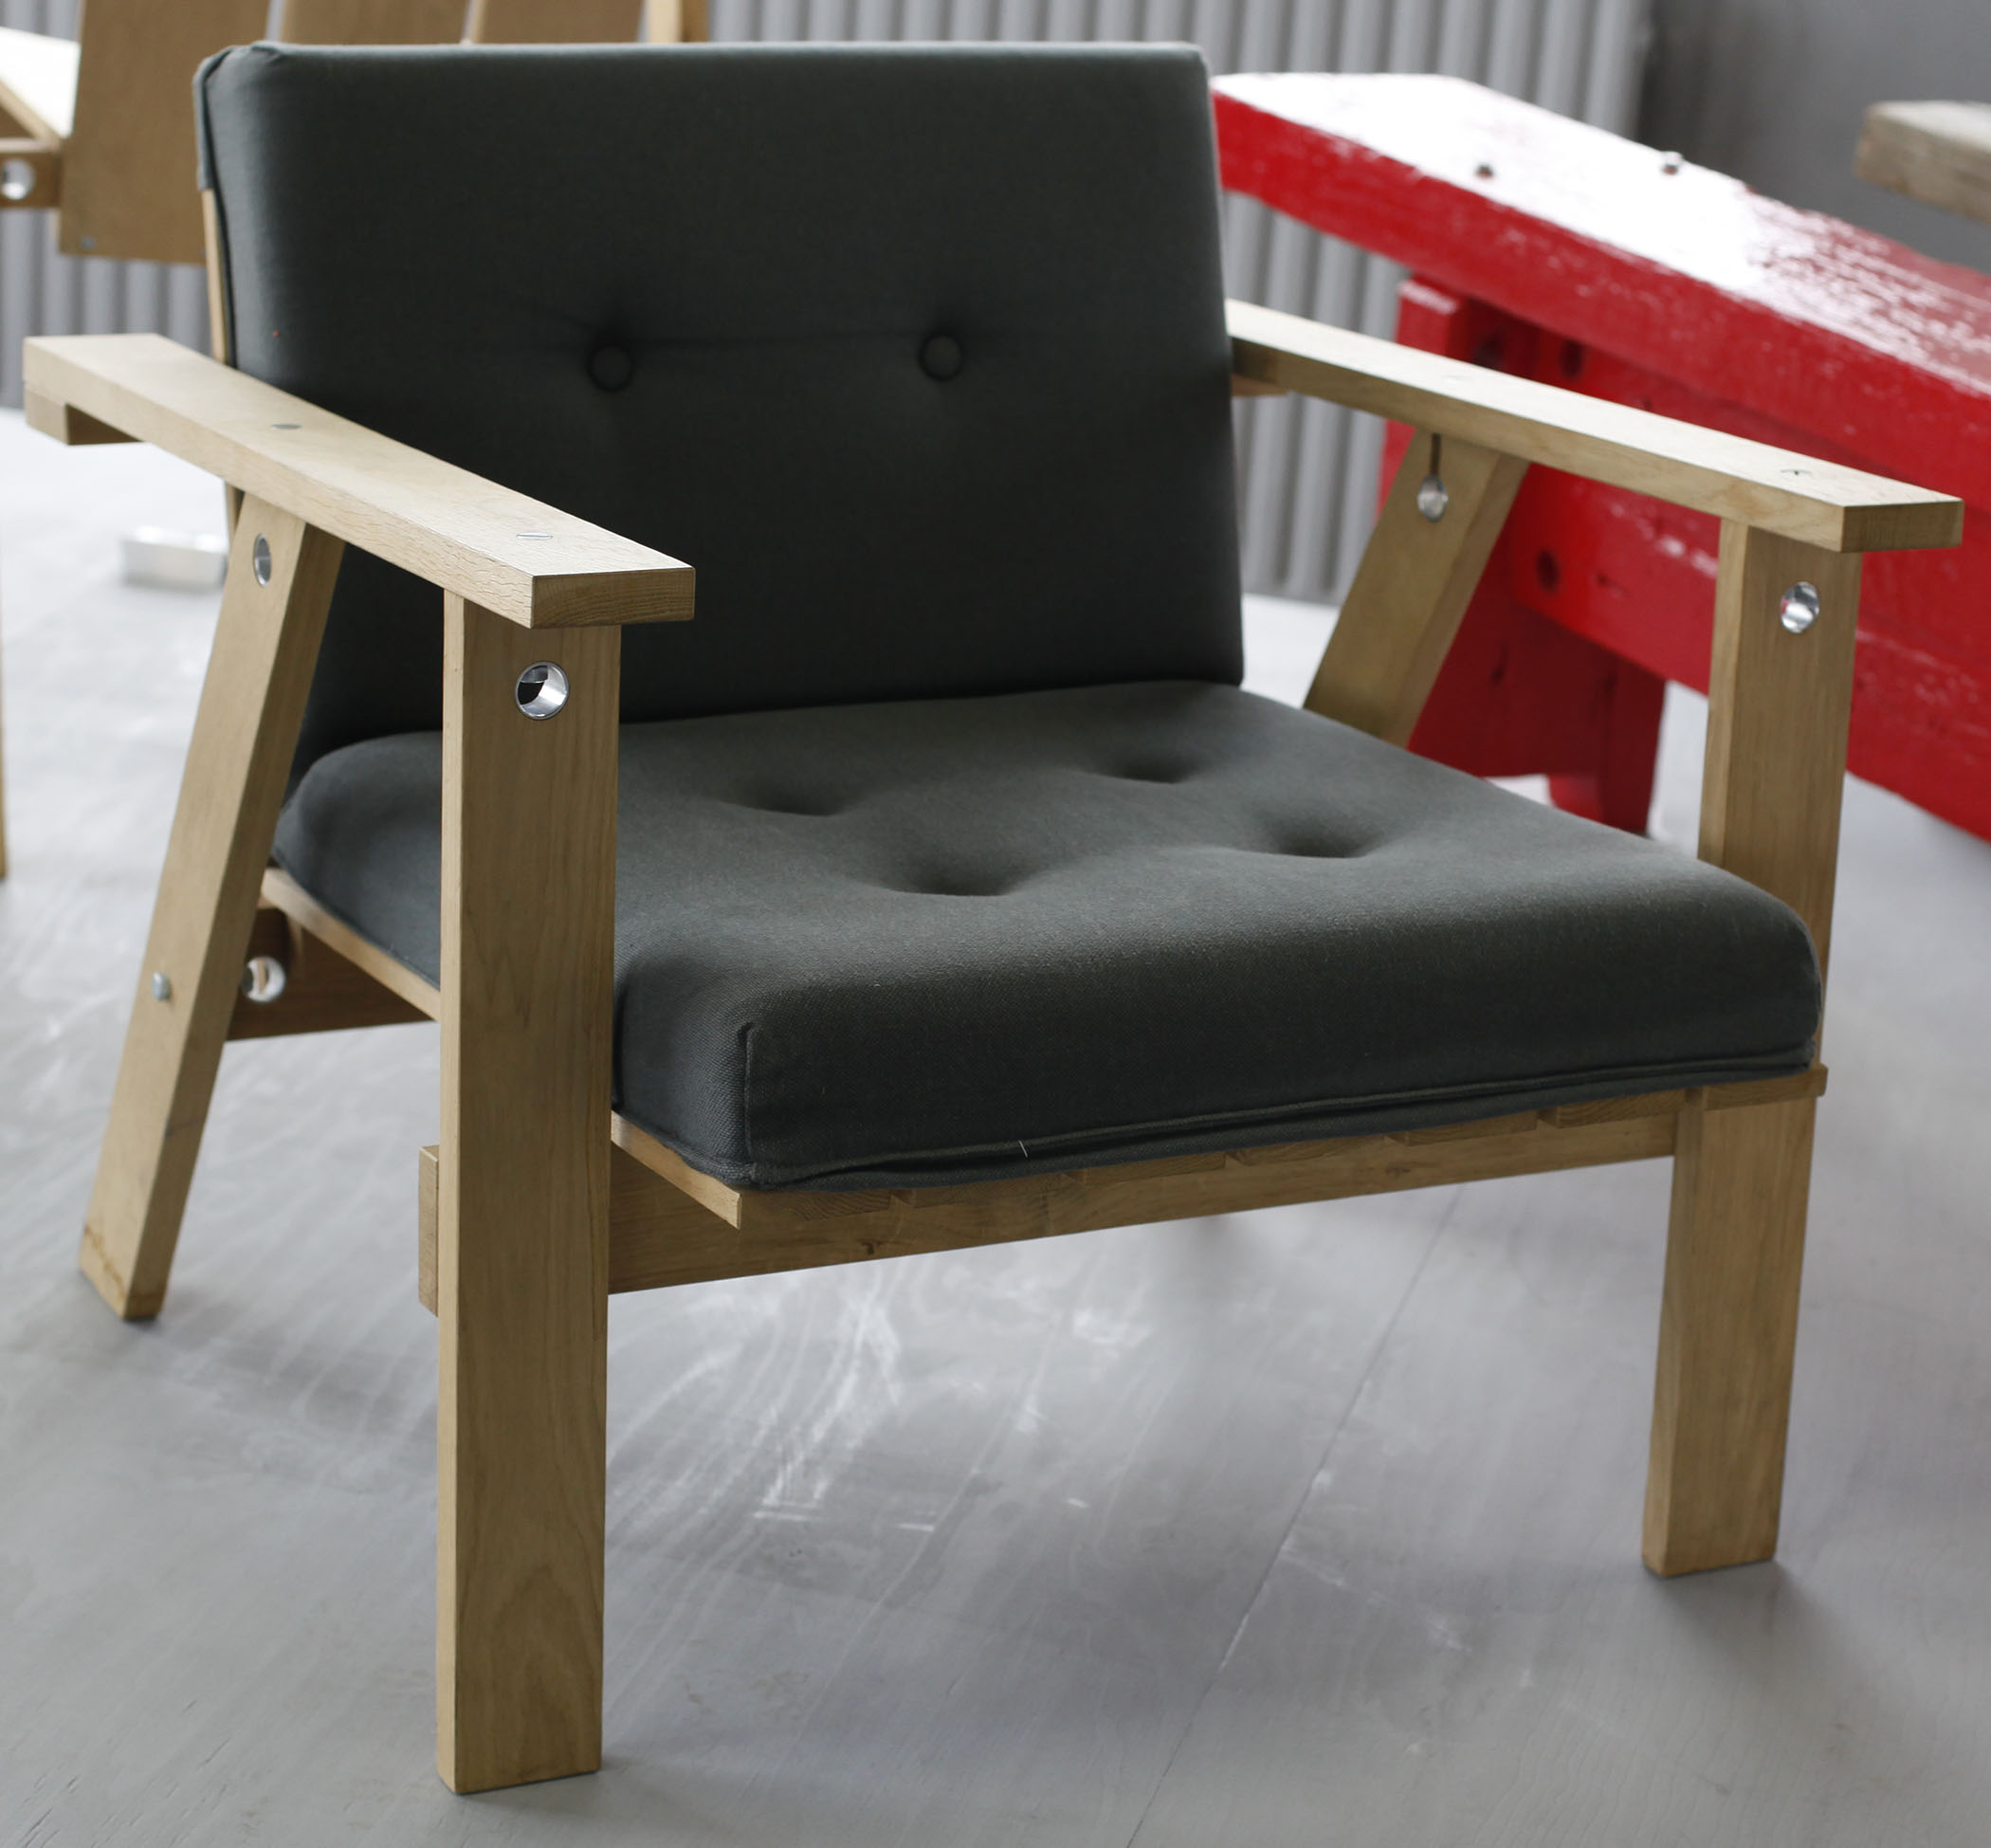 Chairblog.eu - Page 5 of 941 - Chairs, Chair Design and ...